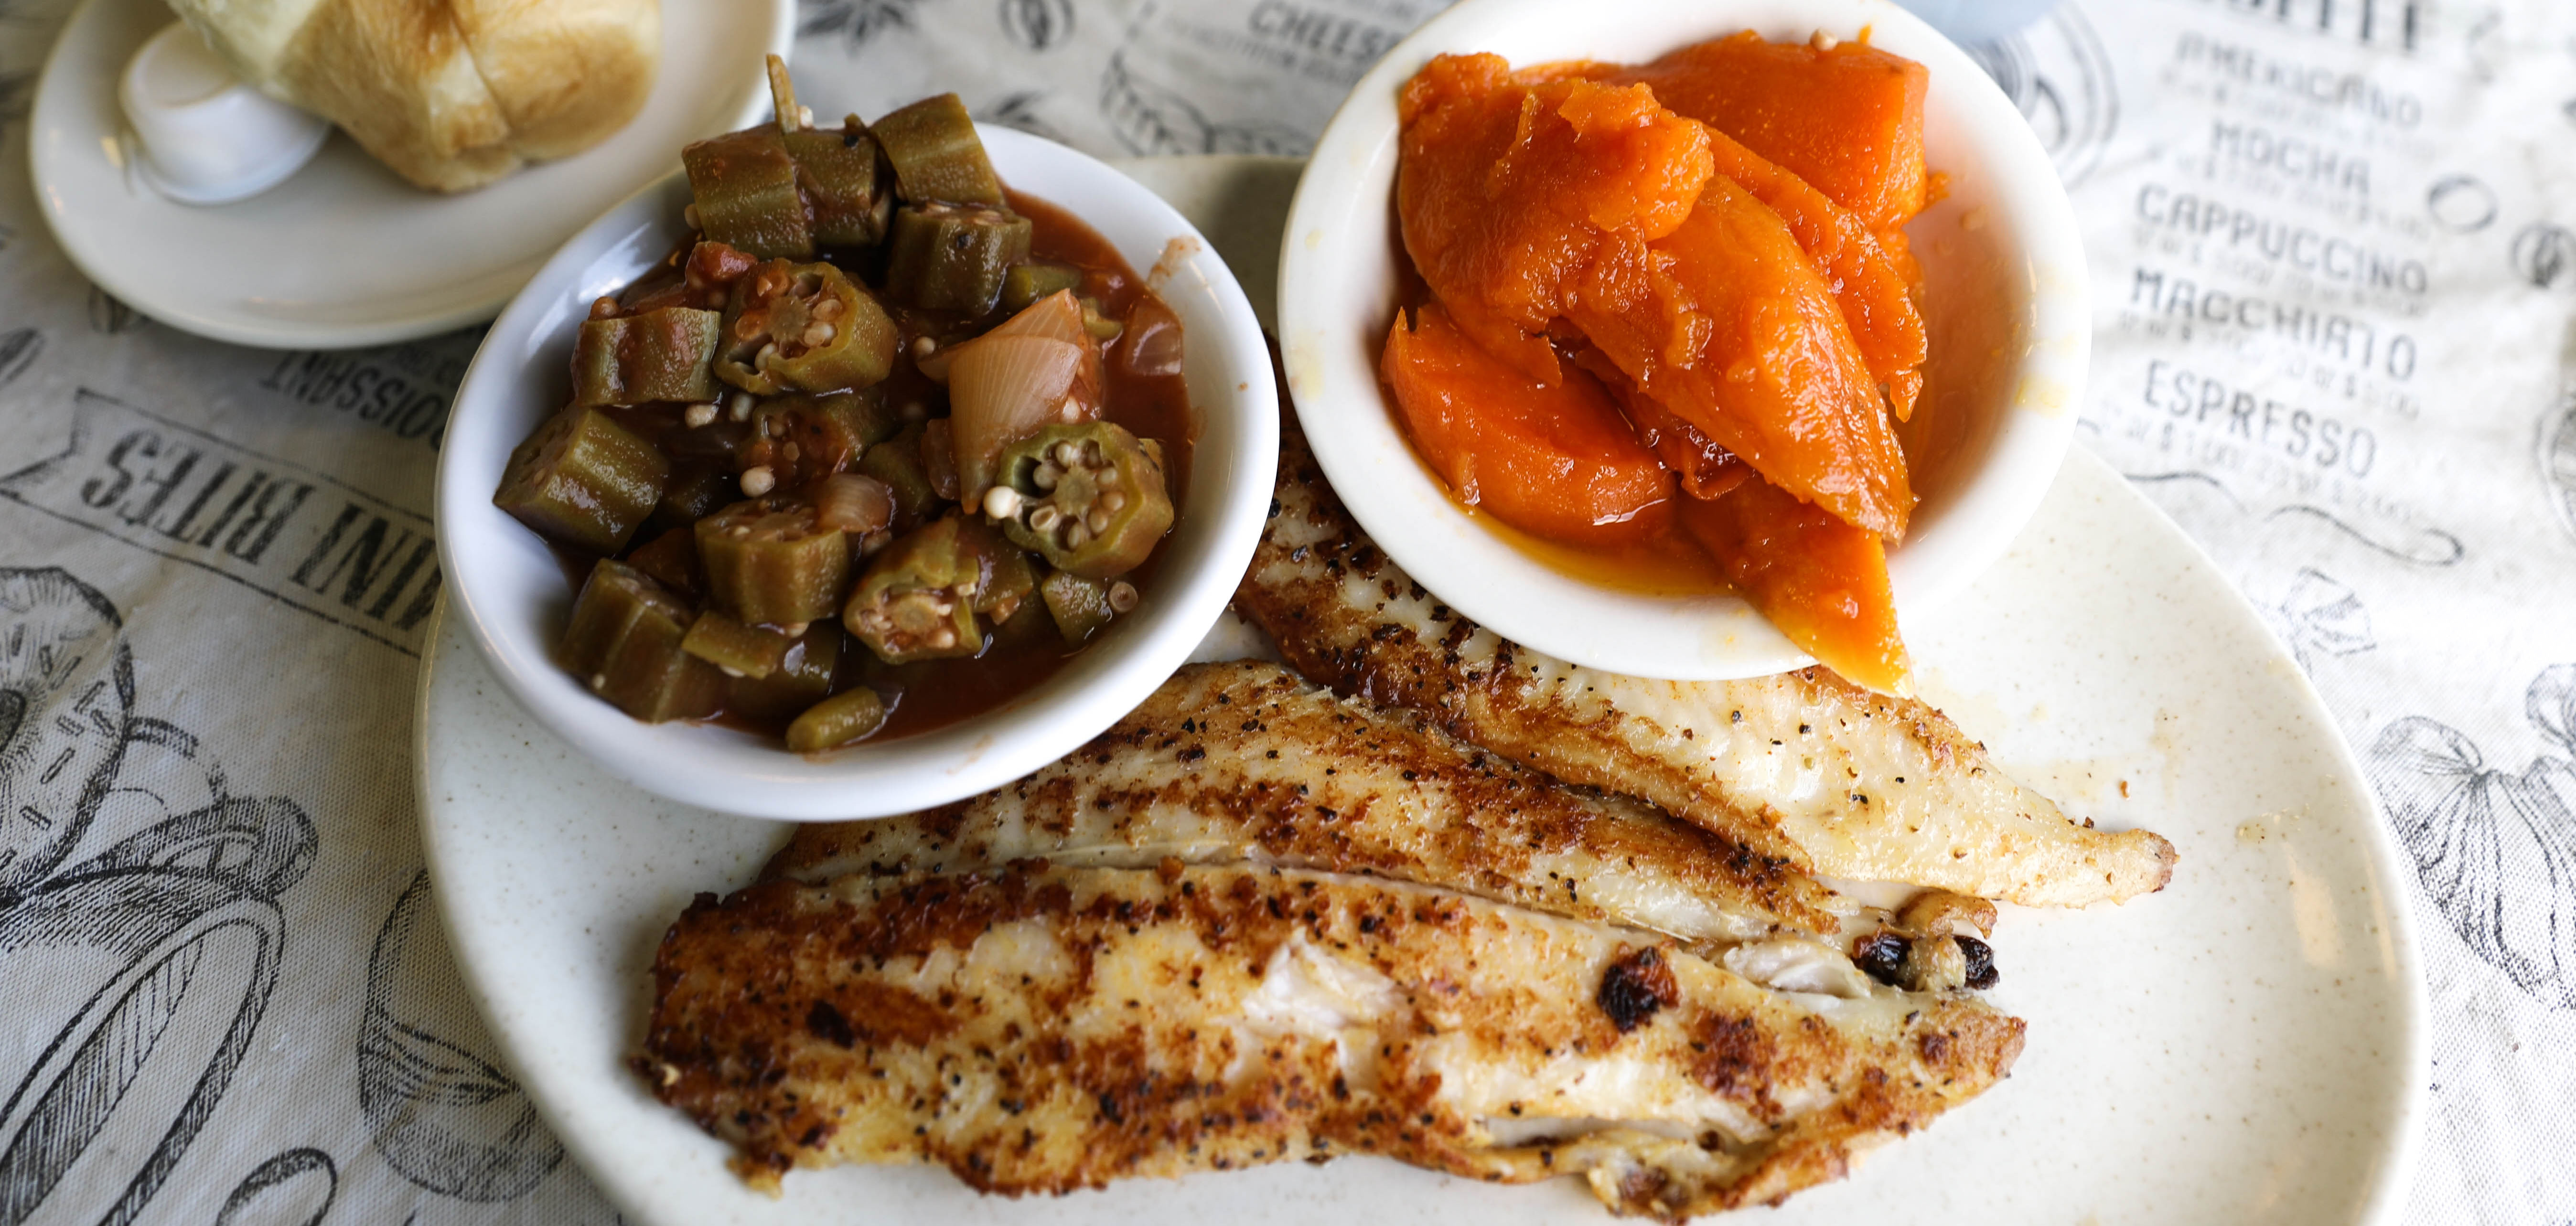 Grilled catfish with candied yams and okra and tomatoes at Evelyn's in North Tulsa.